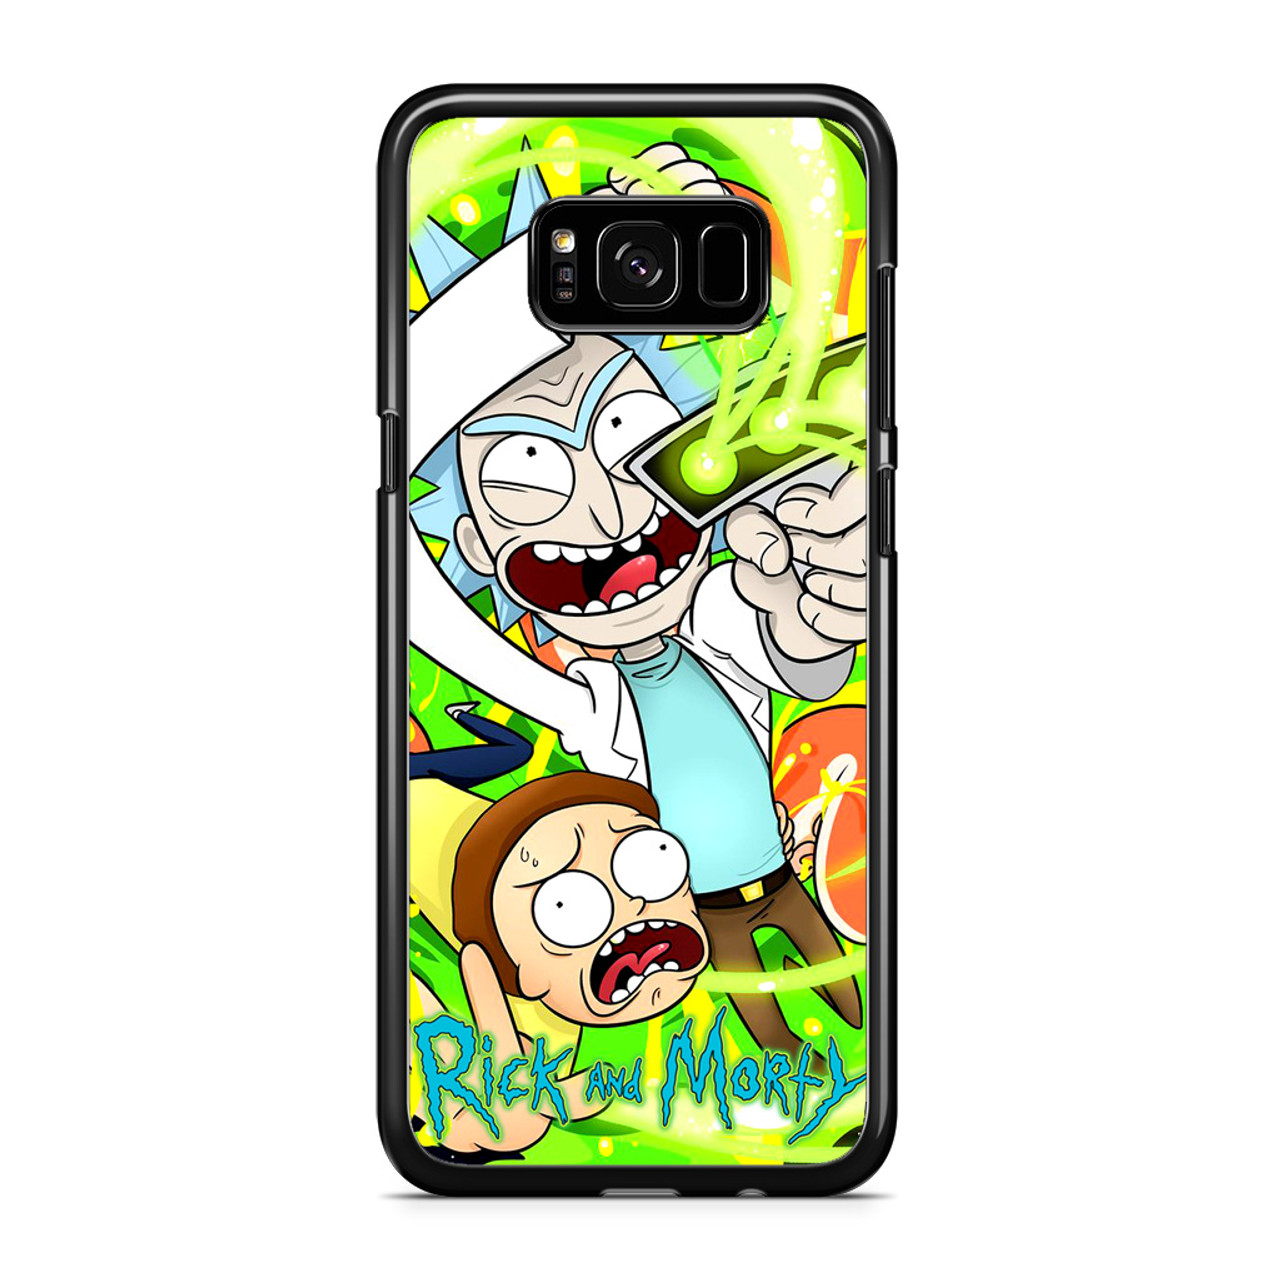 size 40 9c735 65ff5 Rick And Morty 3 Samsung Galaxy S8 Case